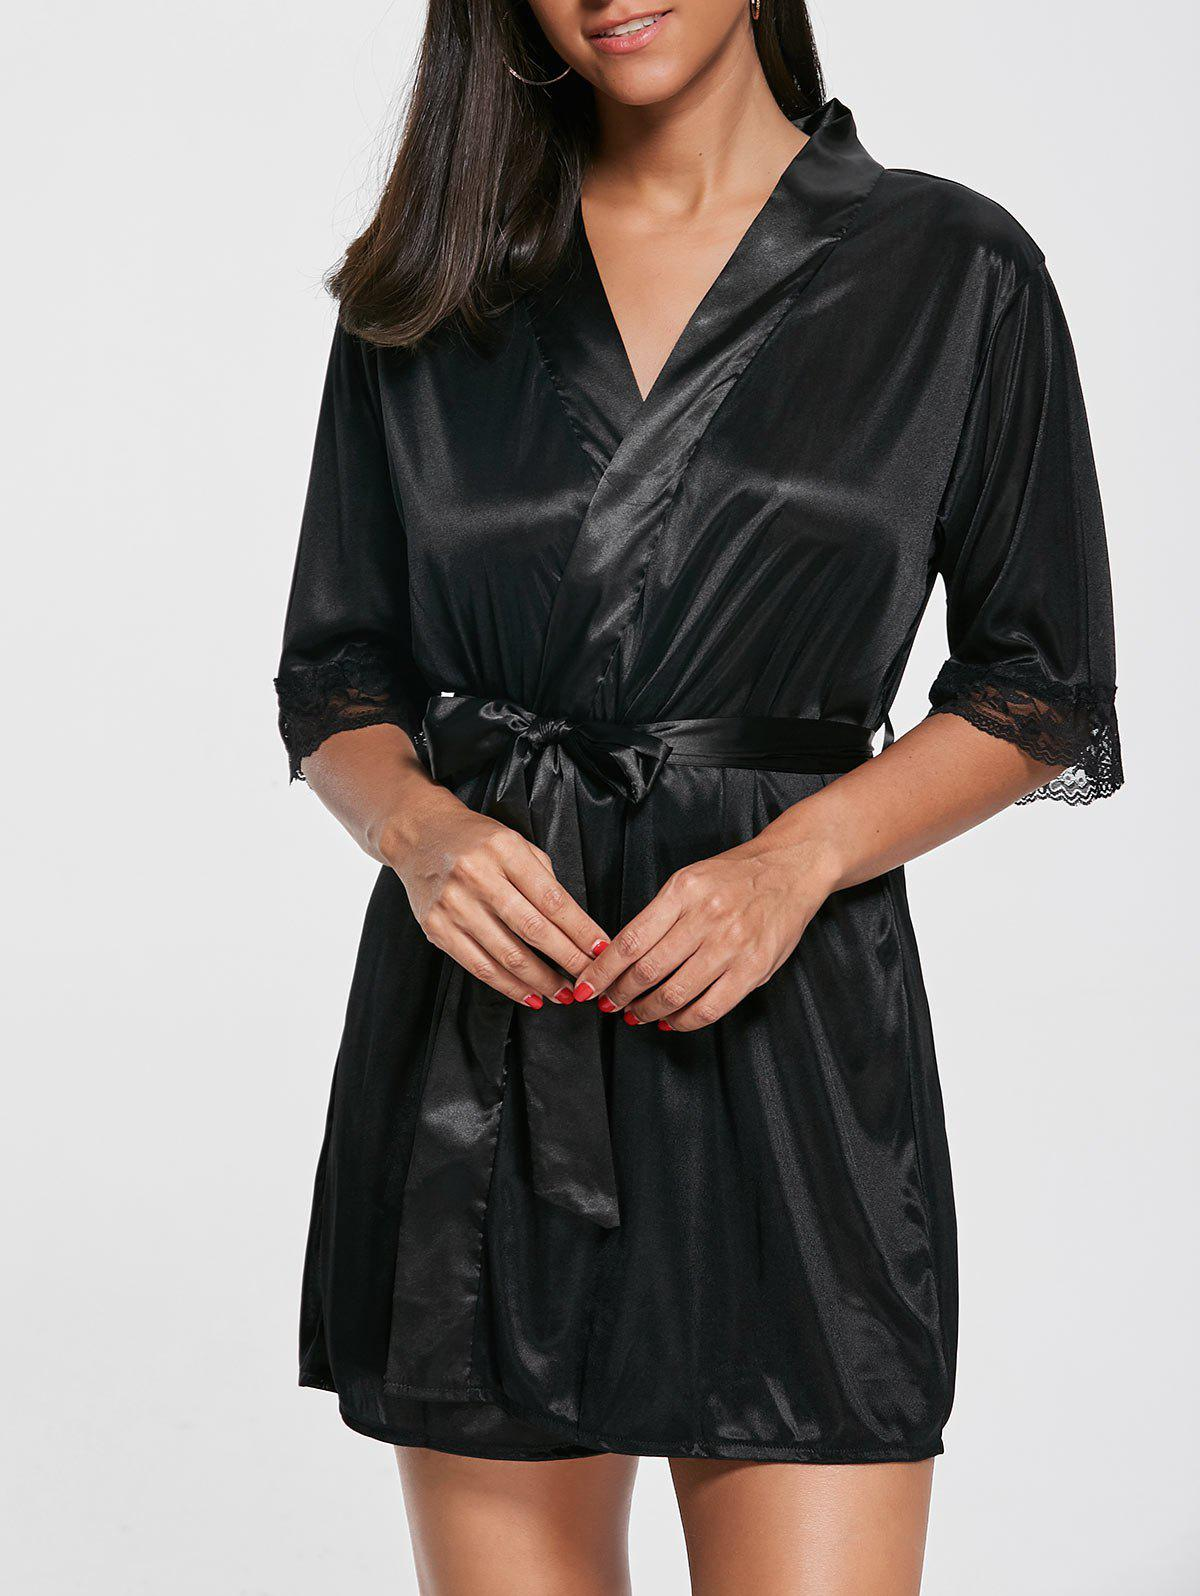 Satin Lace Trim Wrap Sleepwear with Sleeves